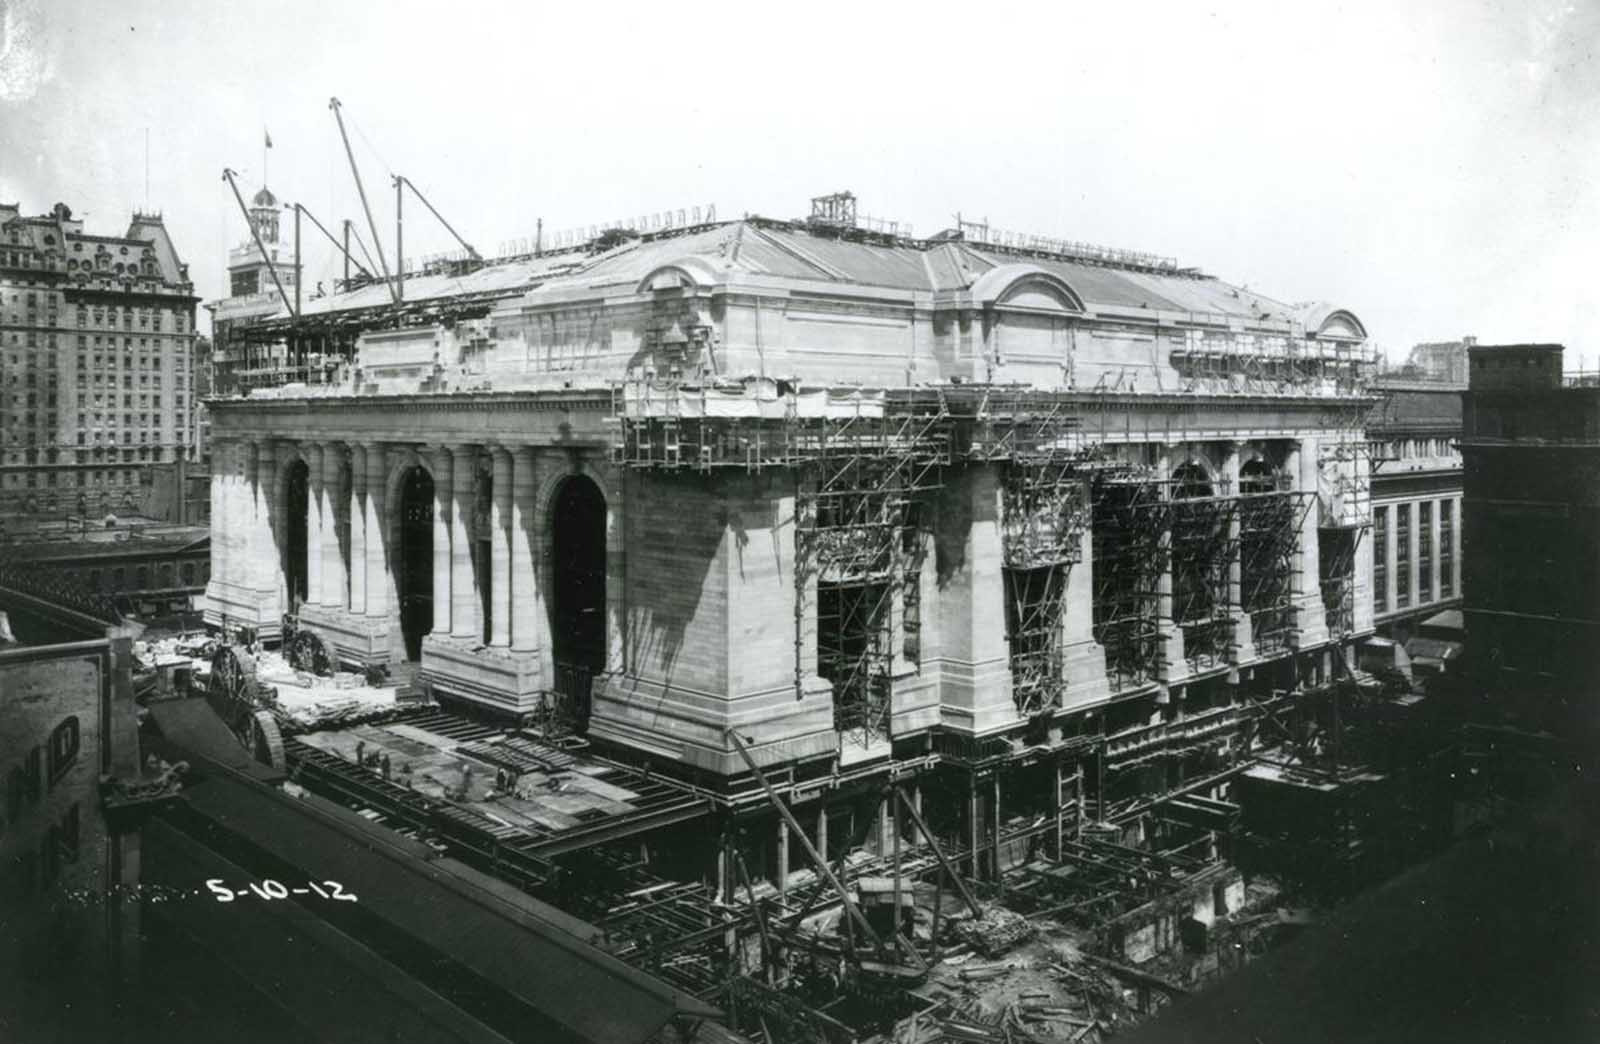 An exterior view of Grand Central Terminal under construction in New York City, on May 10, 1912.